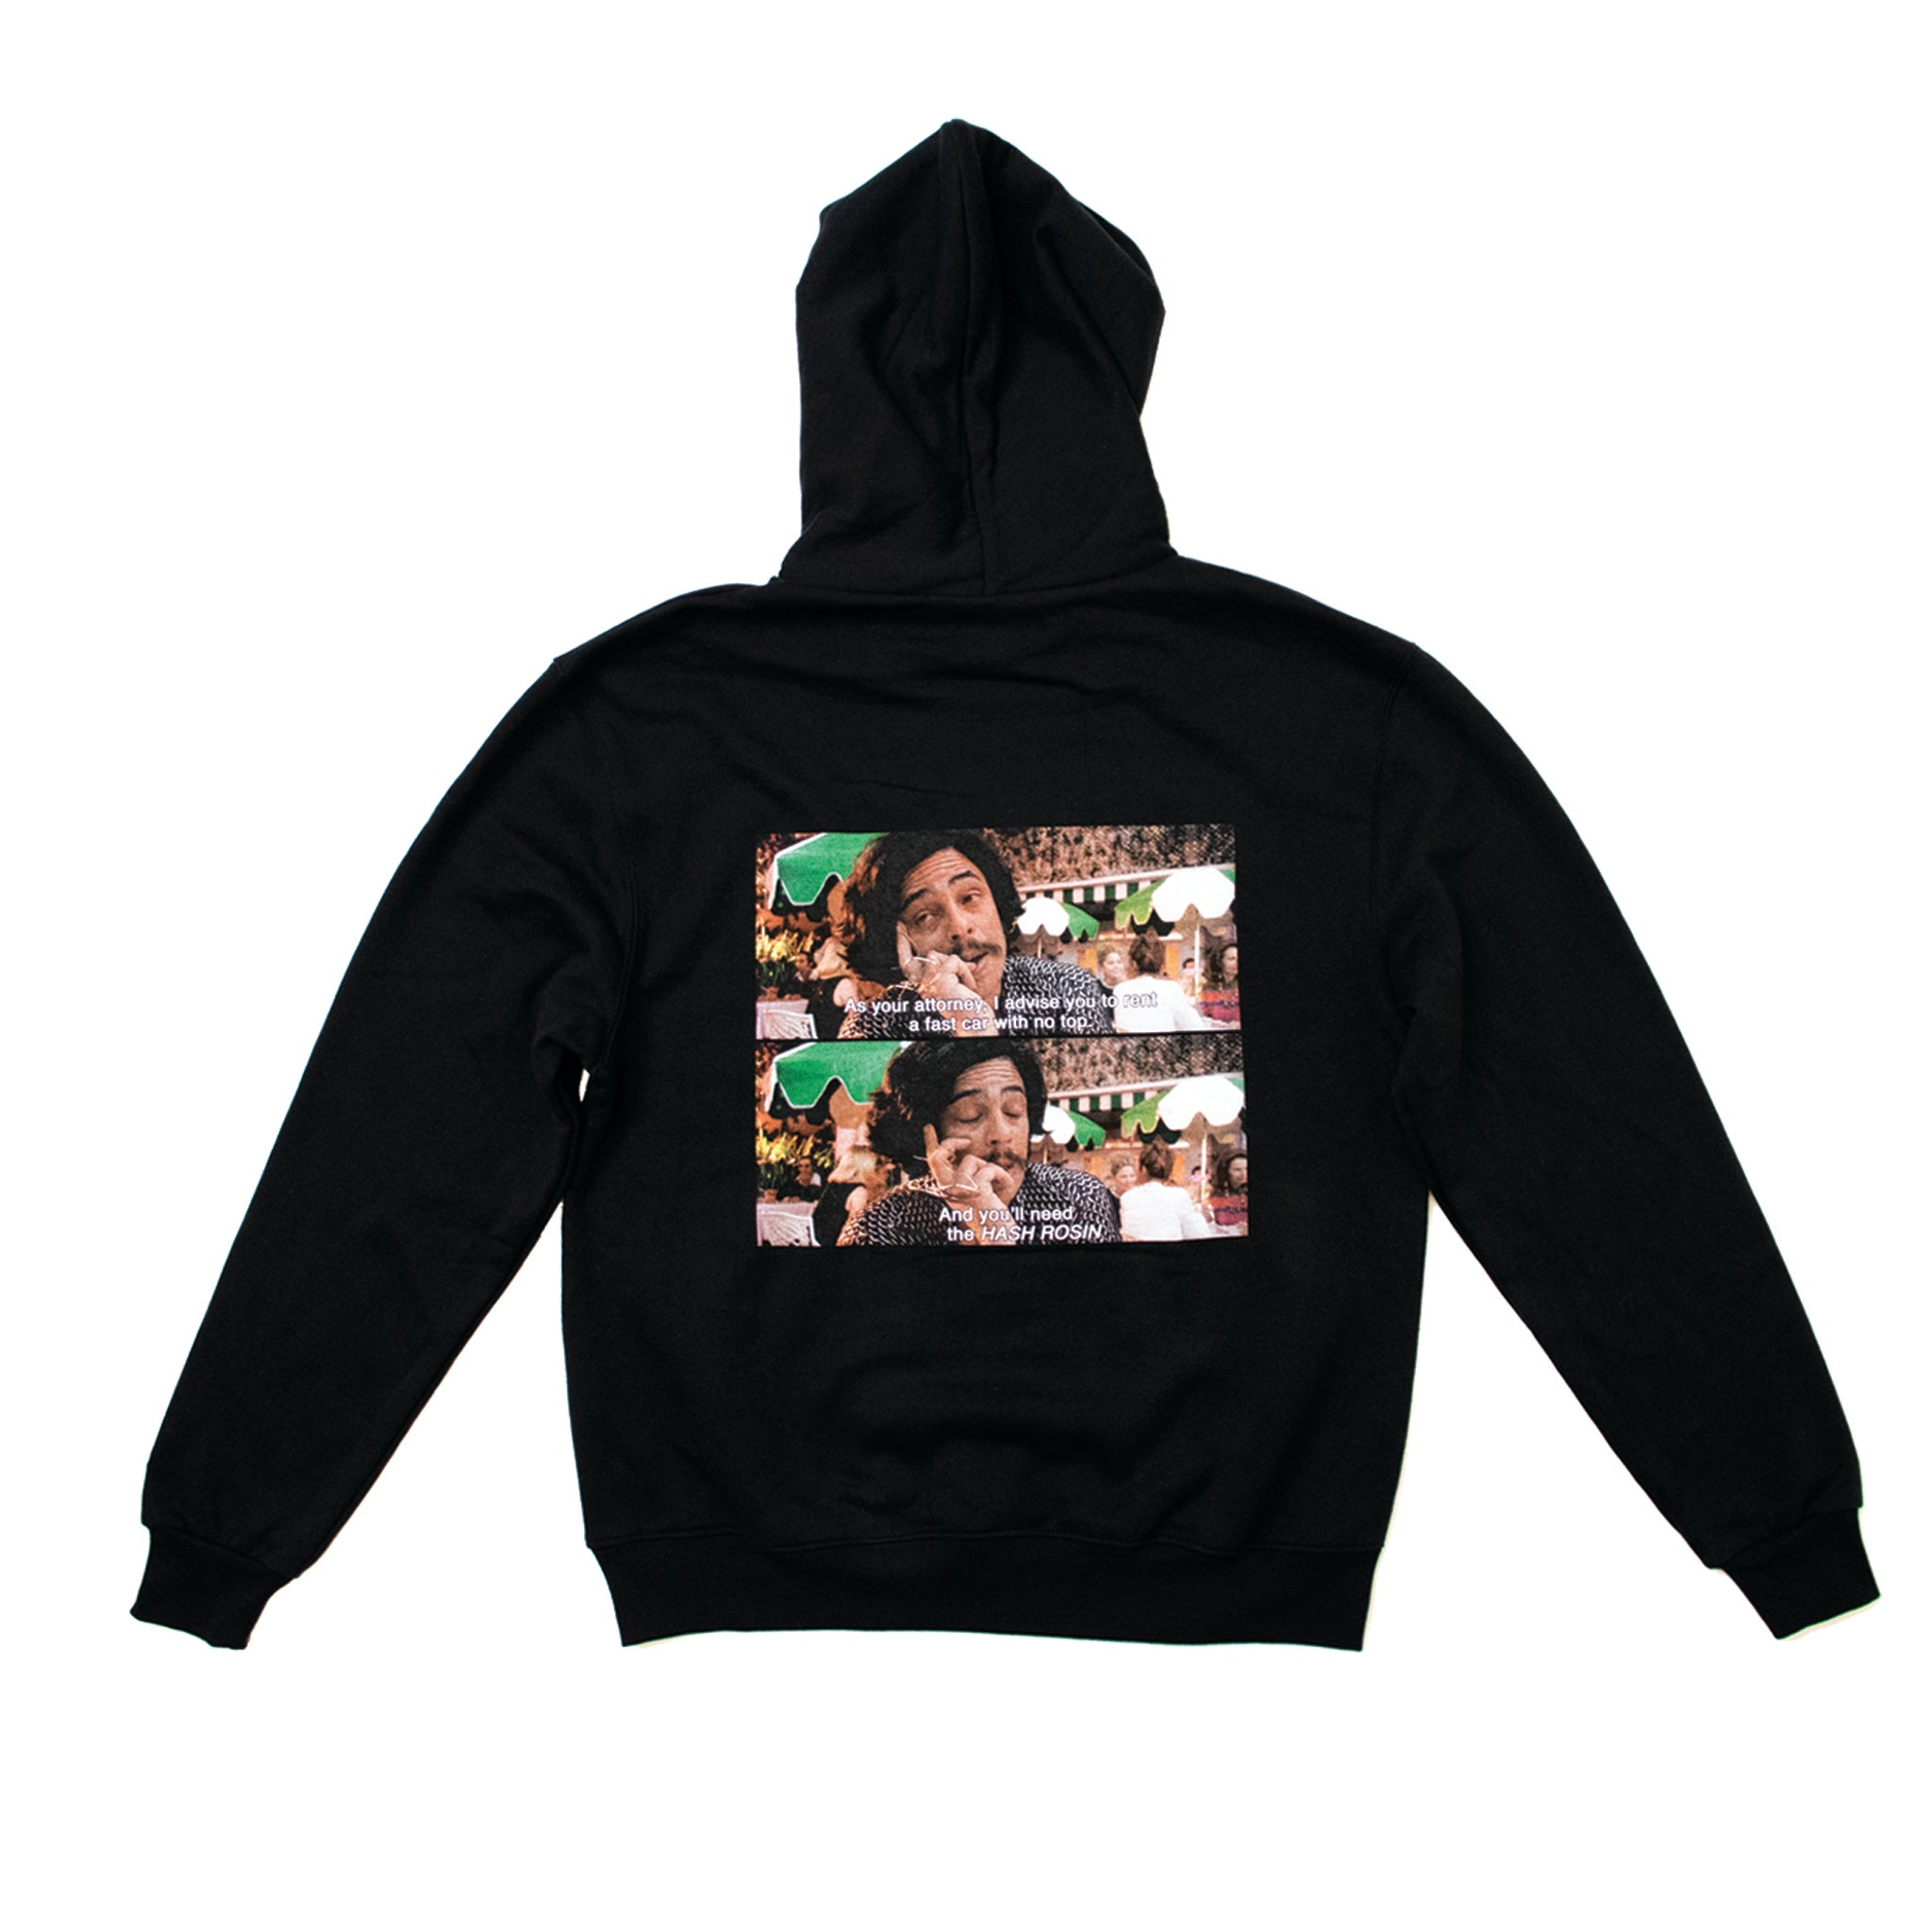 New 710 Labs x GZ1 collab hoodie